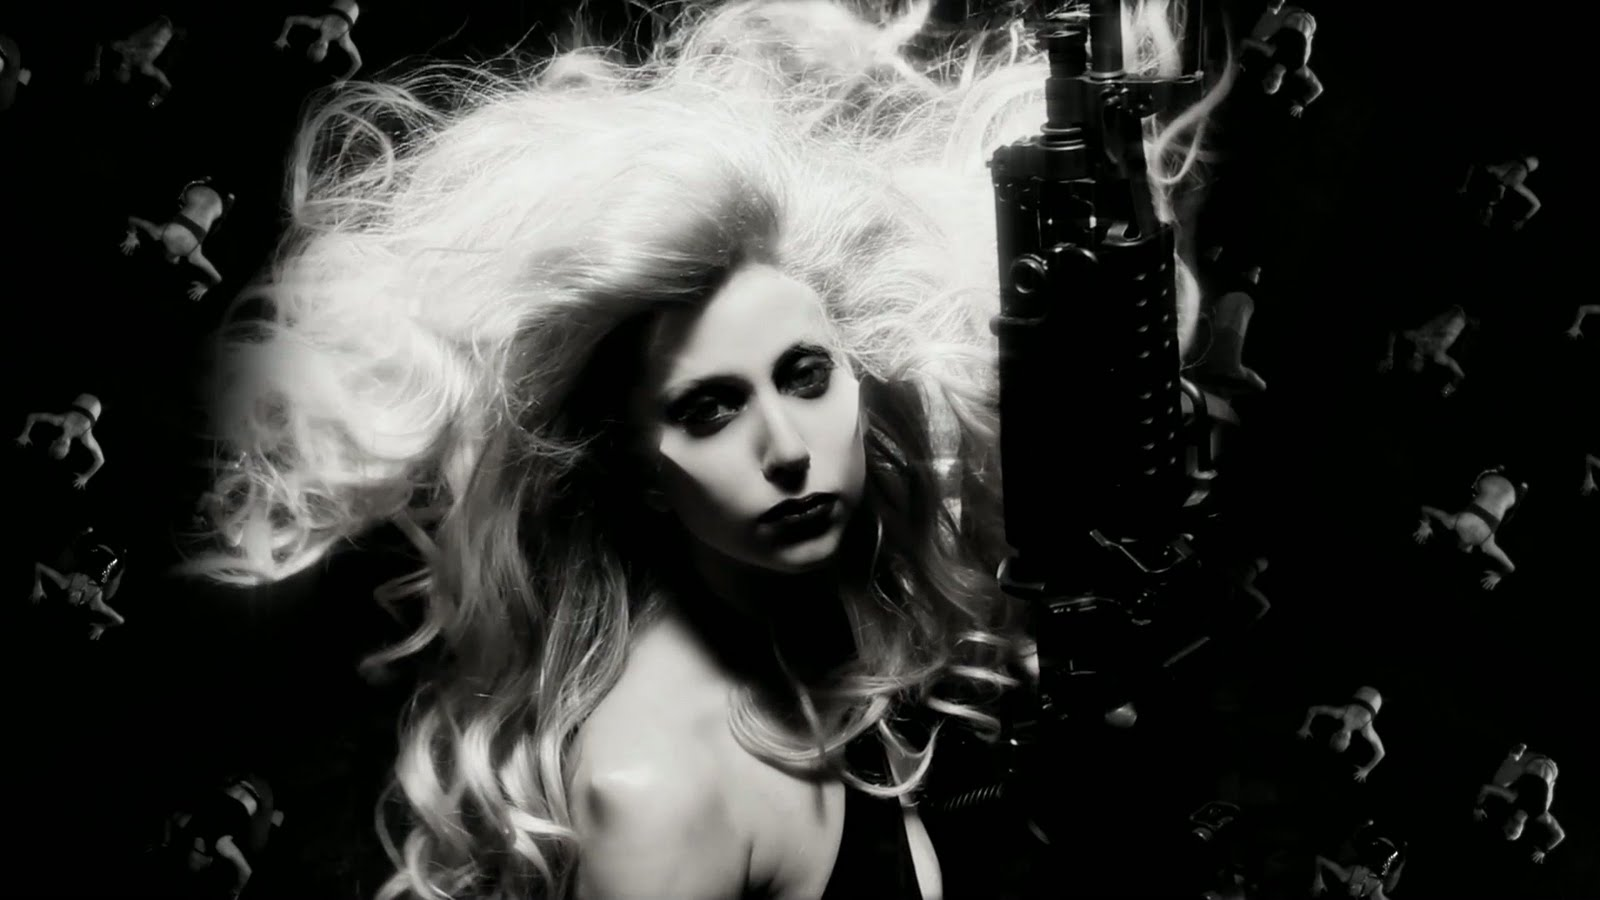 http://1.bp.blogspot.com/-C-QT5pJQifk/TakGx7_YO4I/AAAAAAAADCE/7xiy8pzi1E0/s1600/lady-gaga-born-this-way-download.jpg